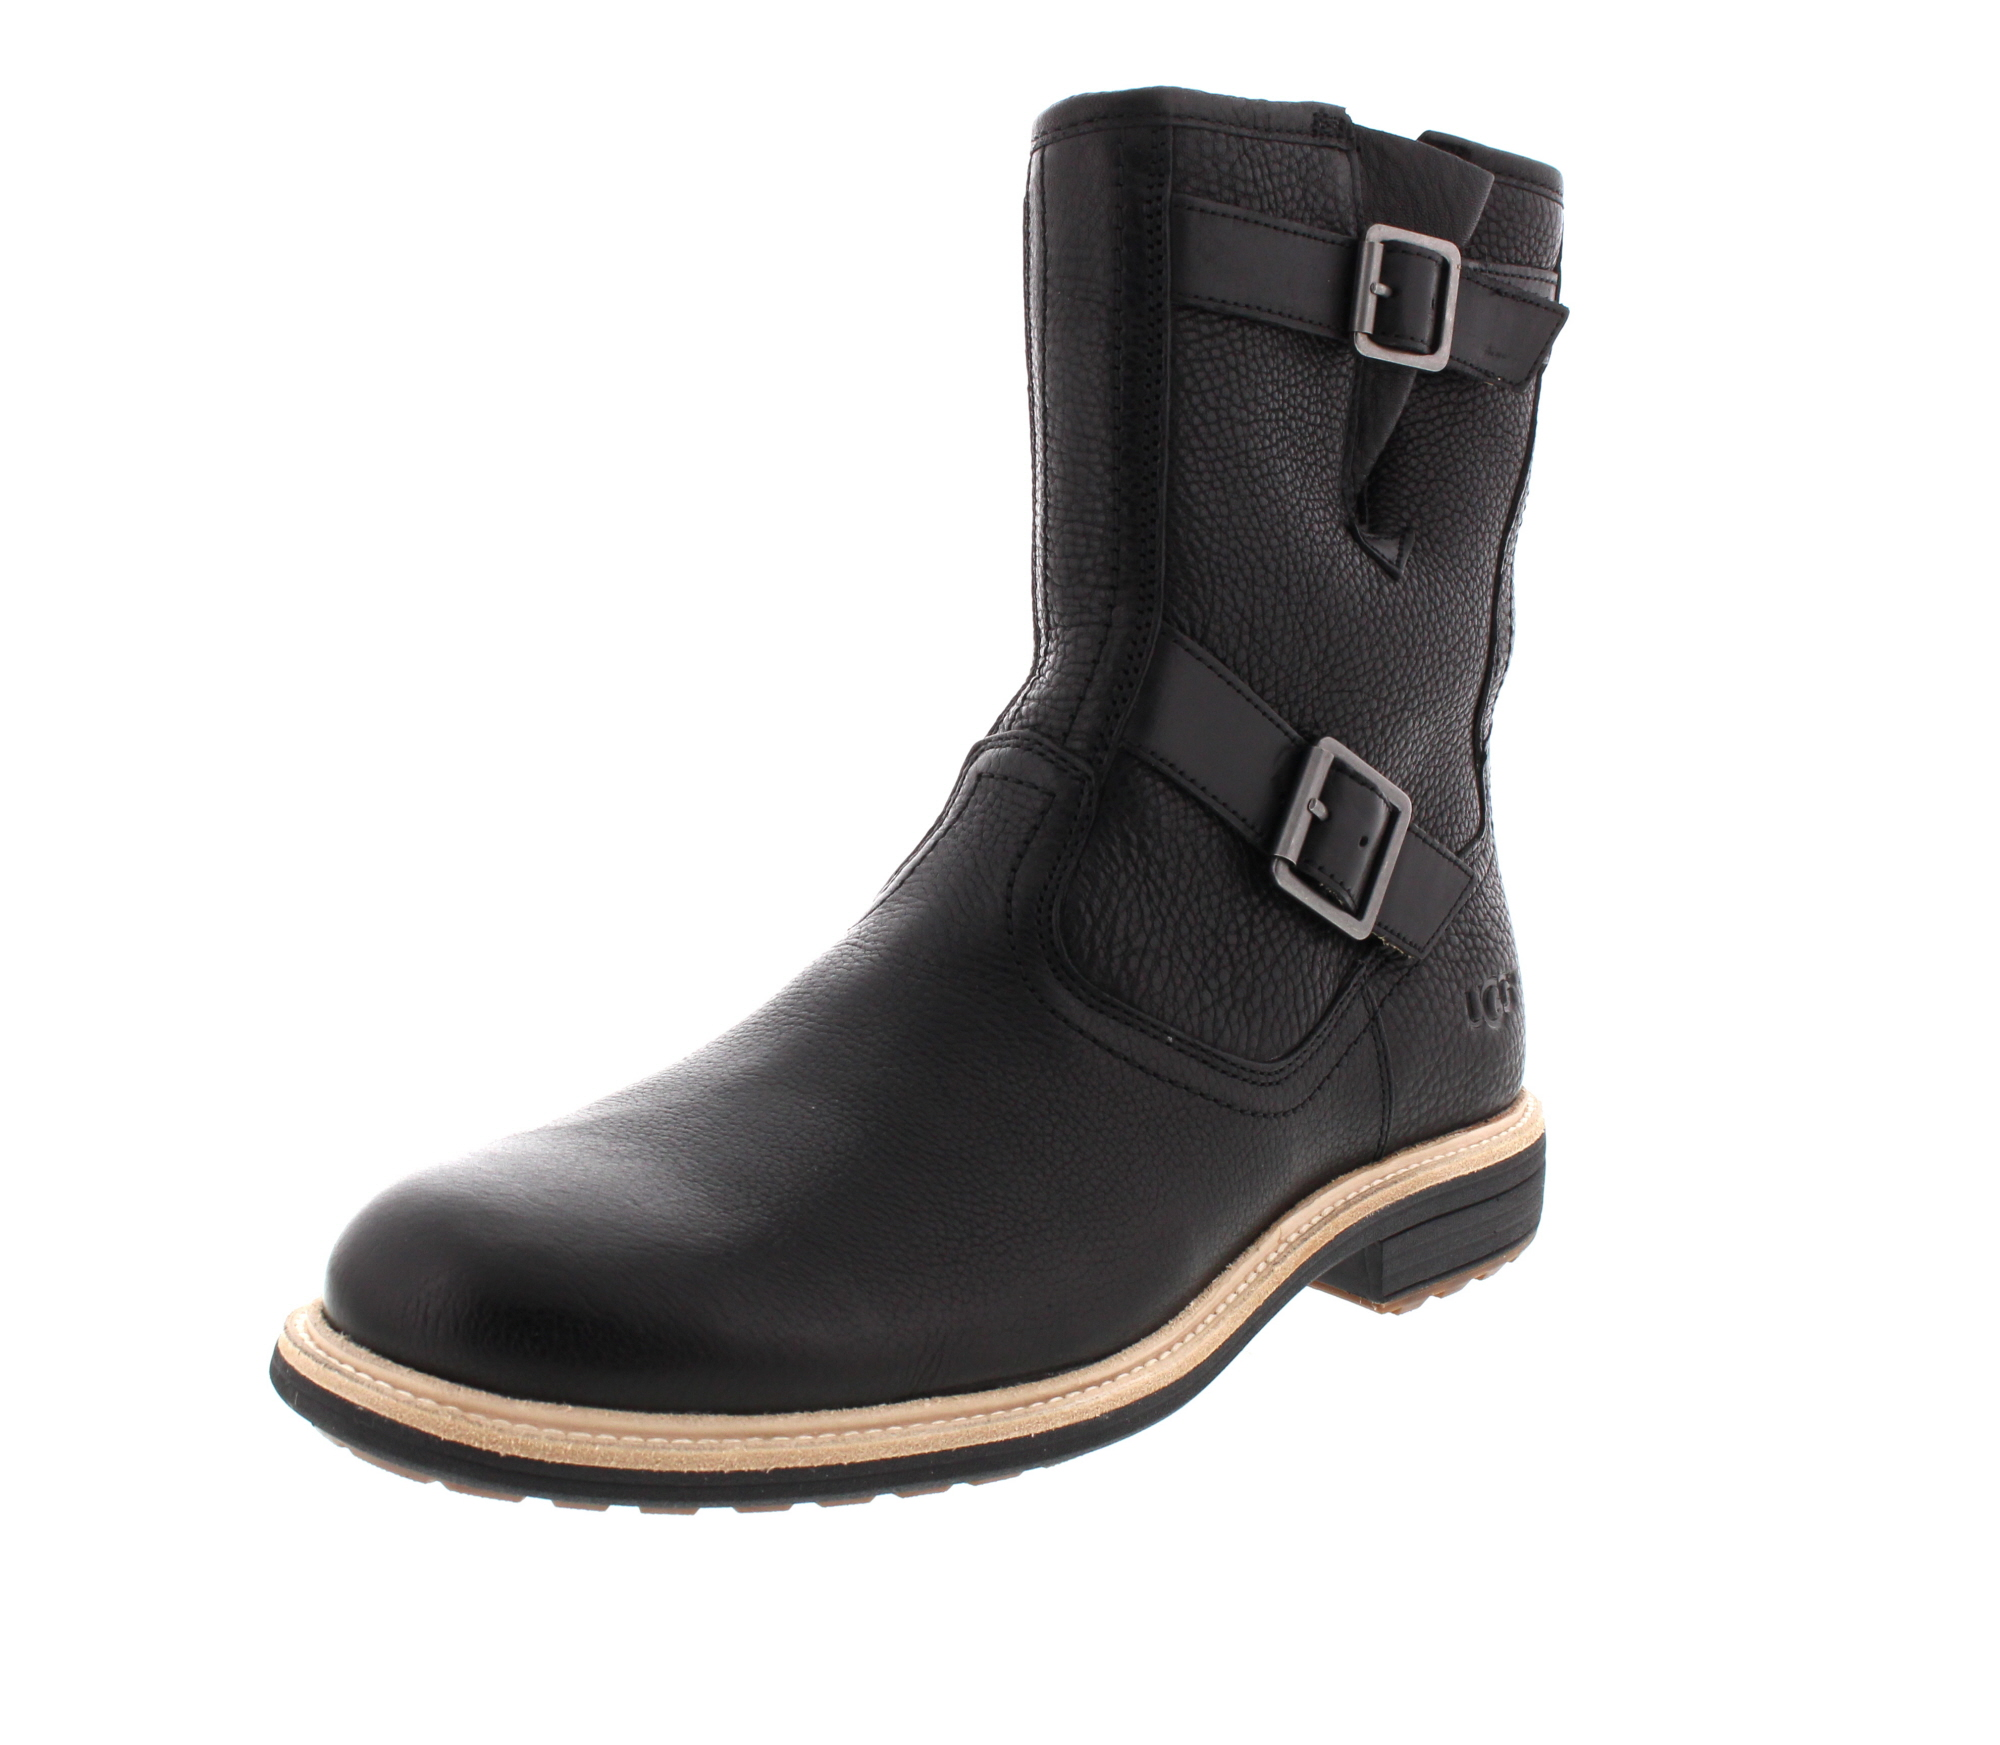 UGG Herrenschuhe - Boots im Bikerlook JAREN - black_0